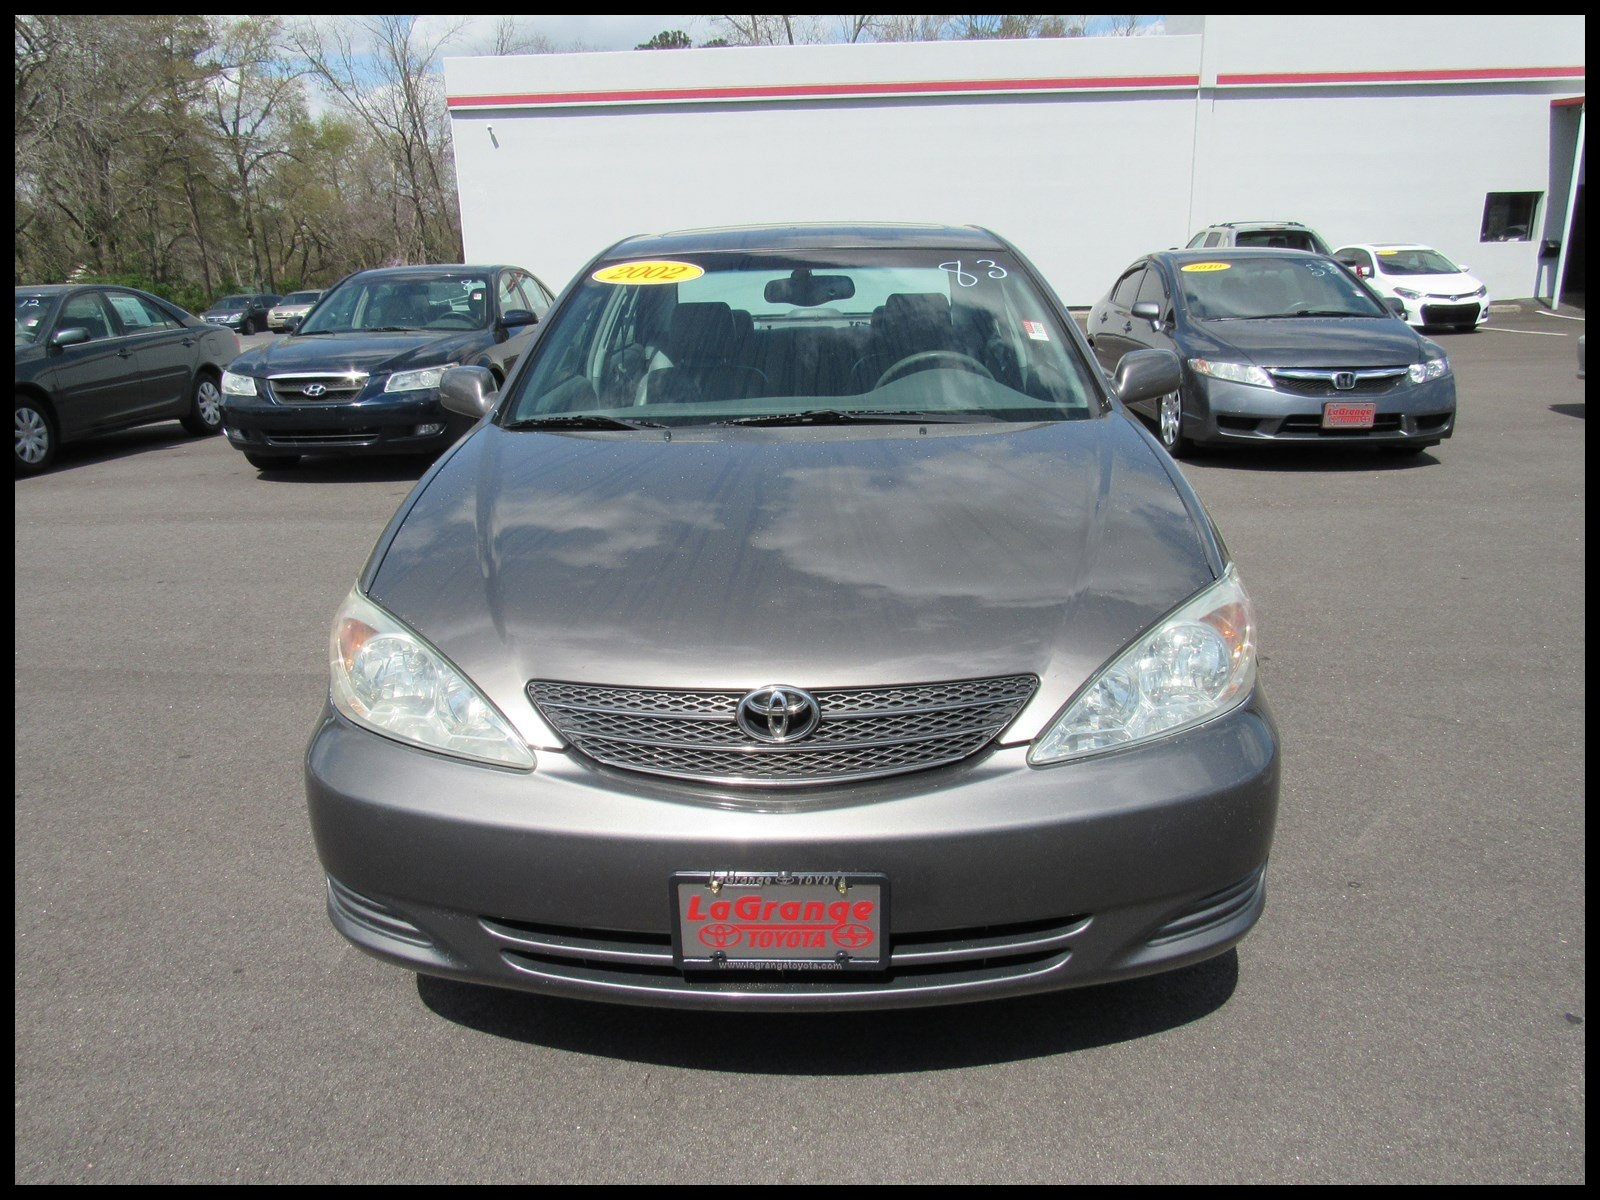 Hot Pre Owned 2002 toyota Camry 4dr Sdn Xle V6 Auto Sedan In Lagrange Price and